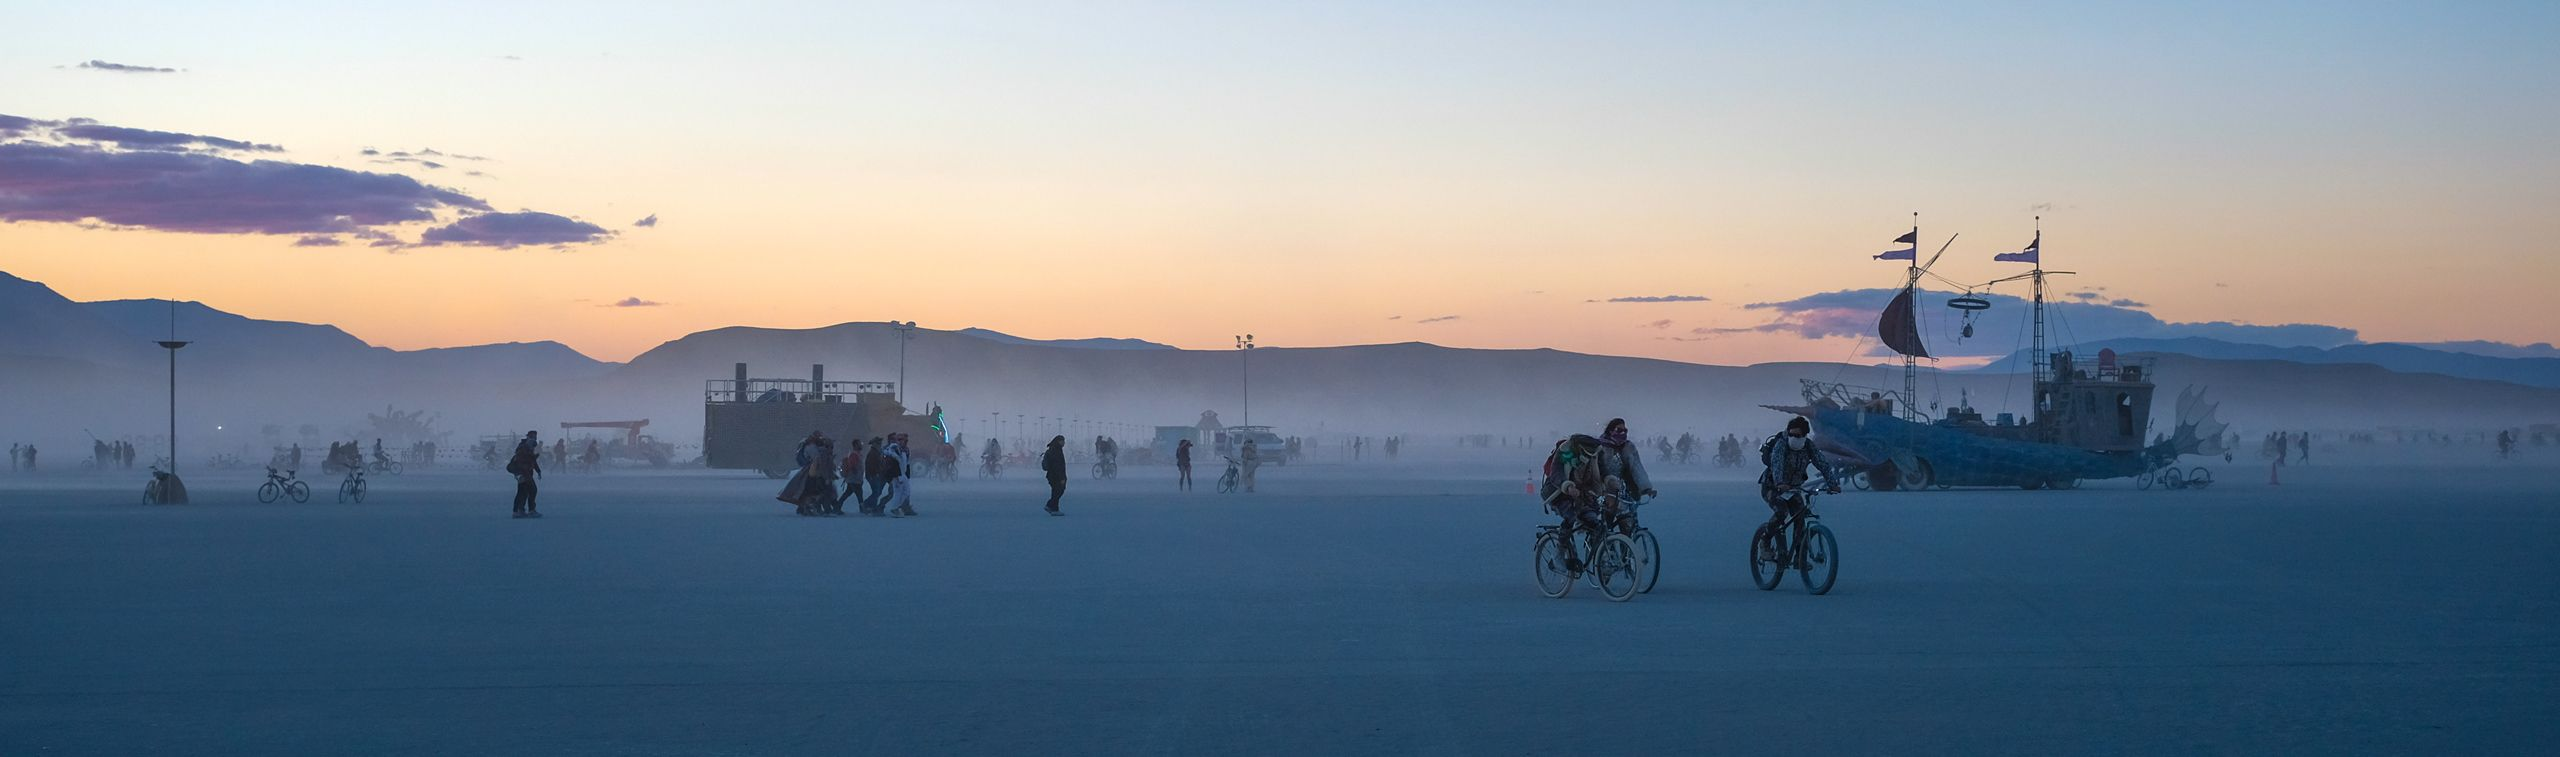 BurningMan'16-2509.jpg